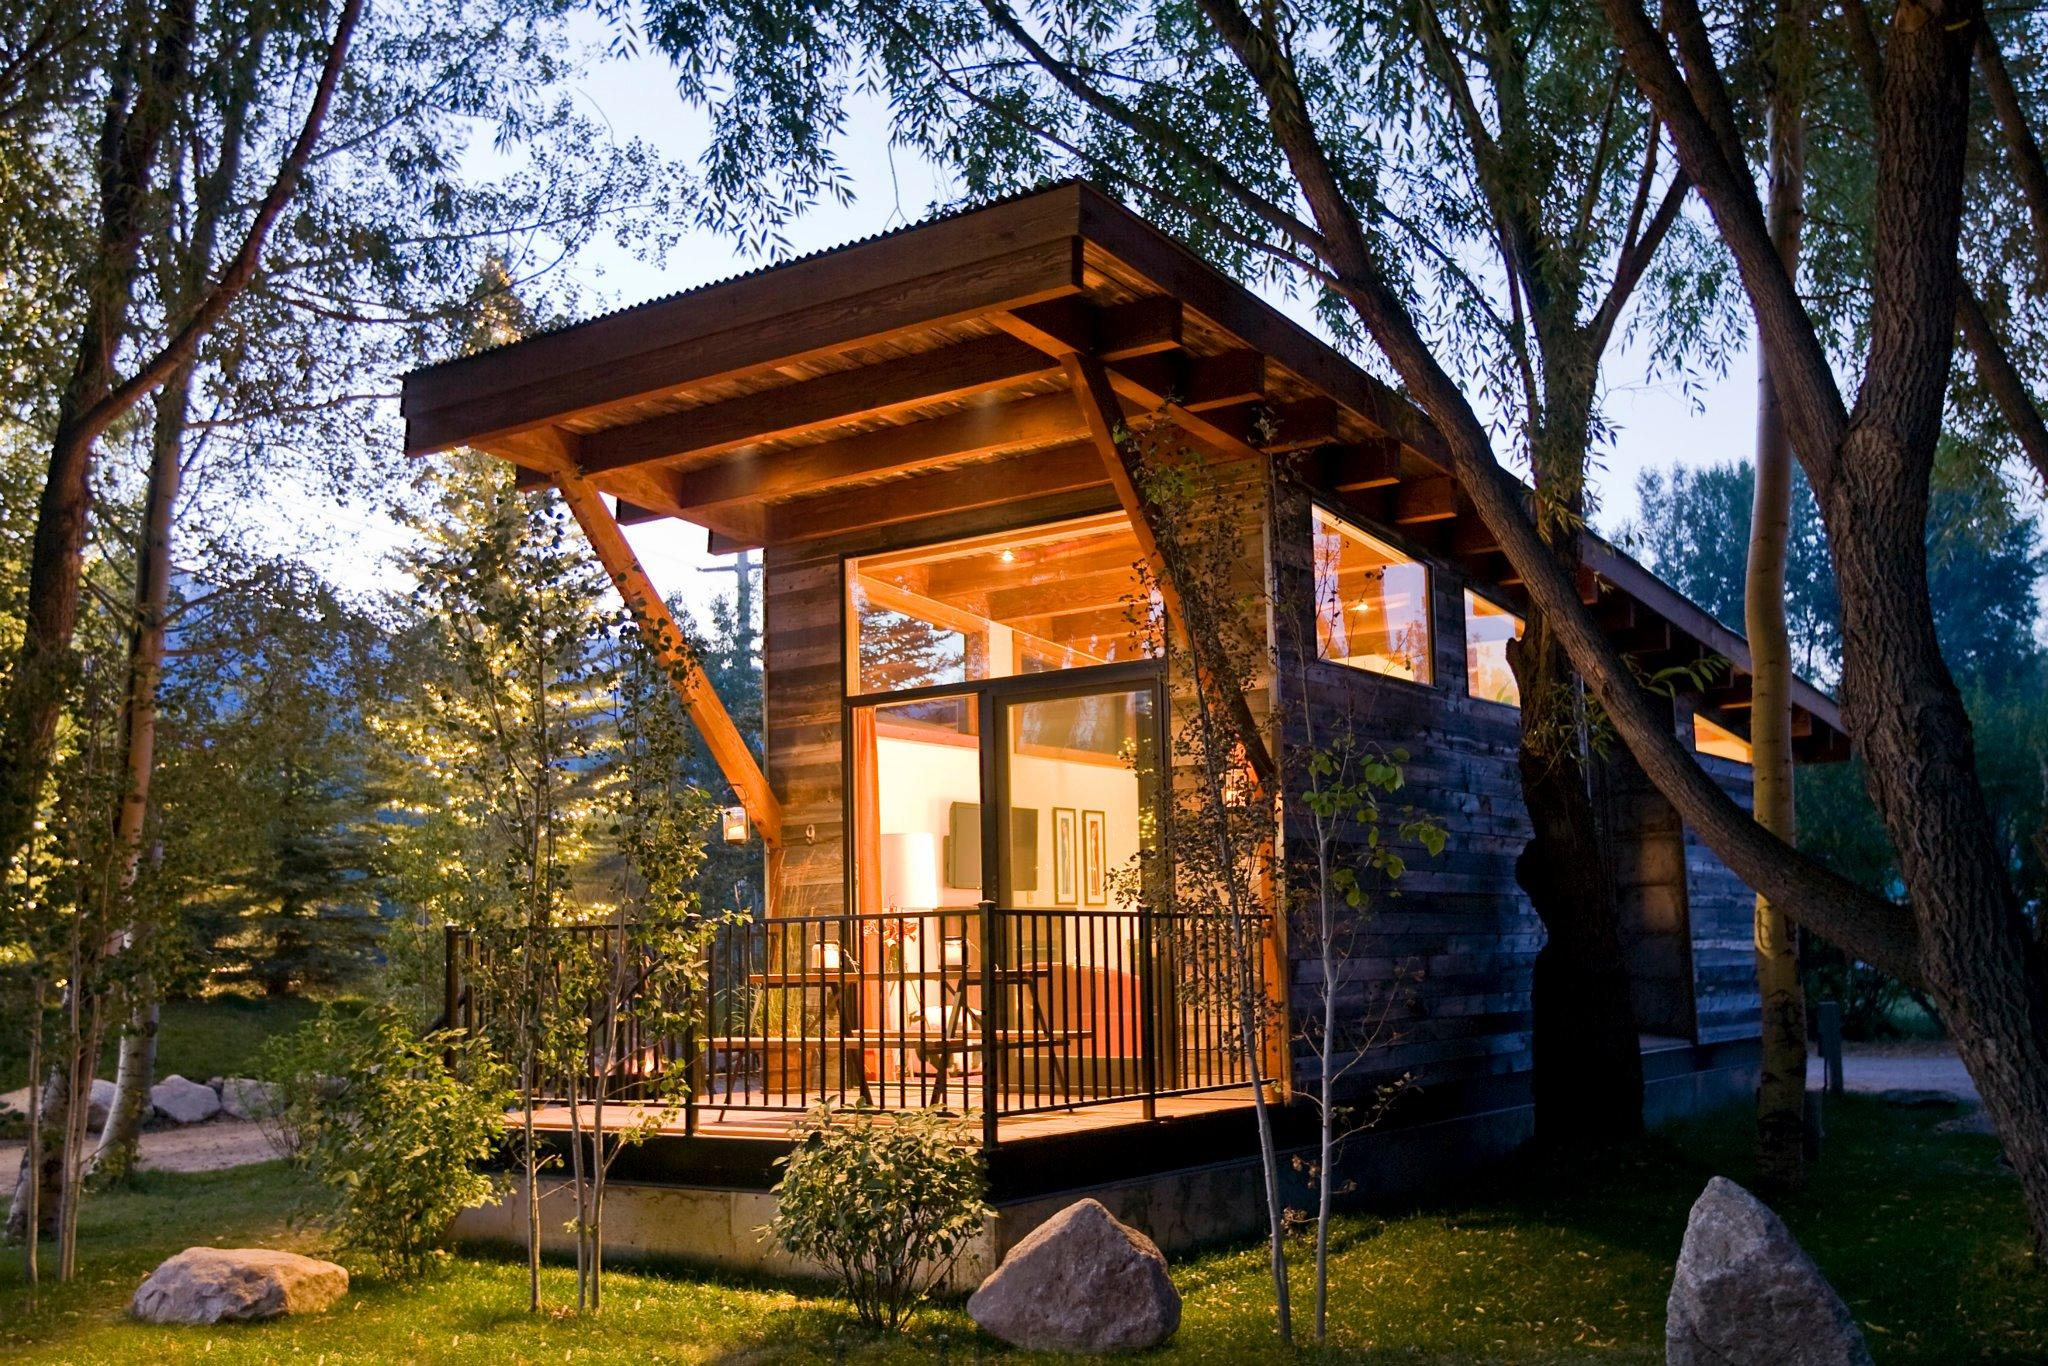 Superb Gallery The Wedge A Small Cabin On Wheels Small House Bliss Largest Home Design Picture Inspirations Pitcheantrous